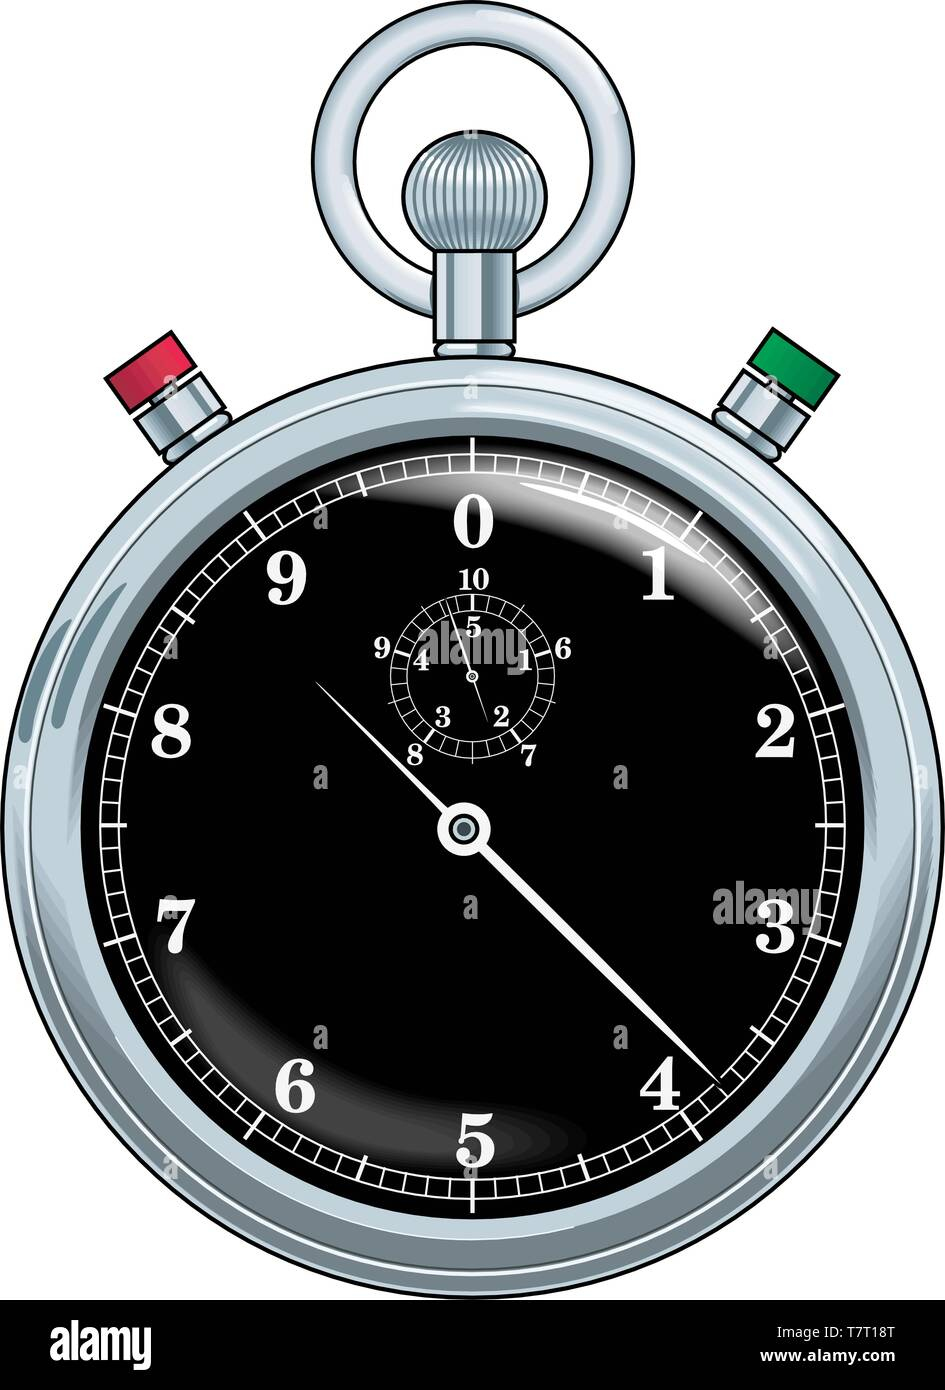 Stop Watch Vector Illustration - Stock Image